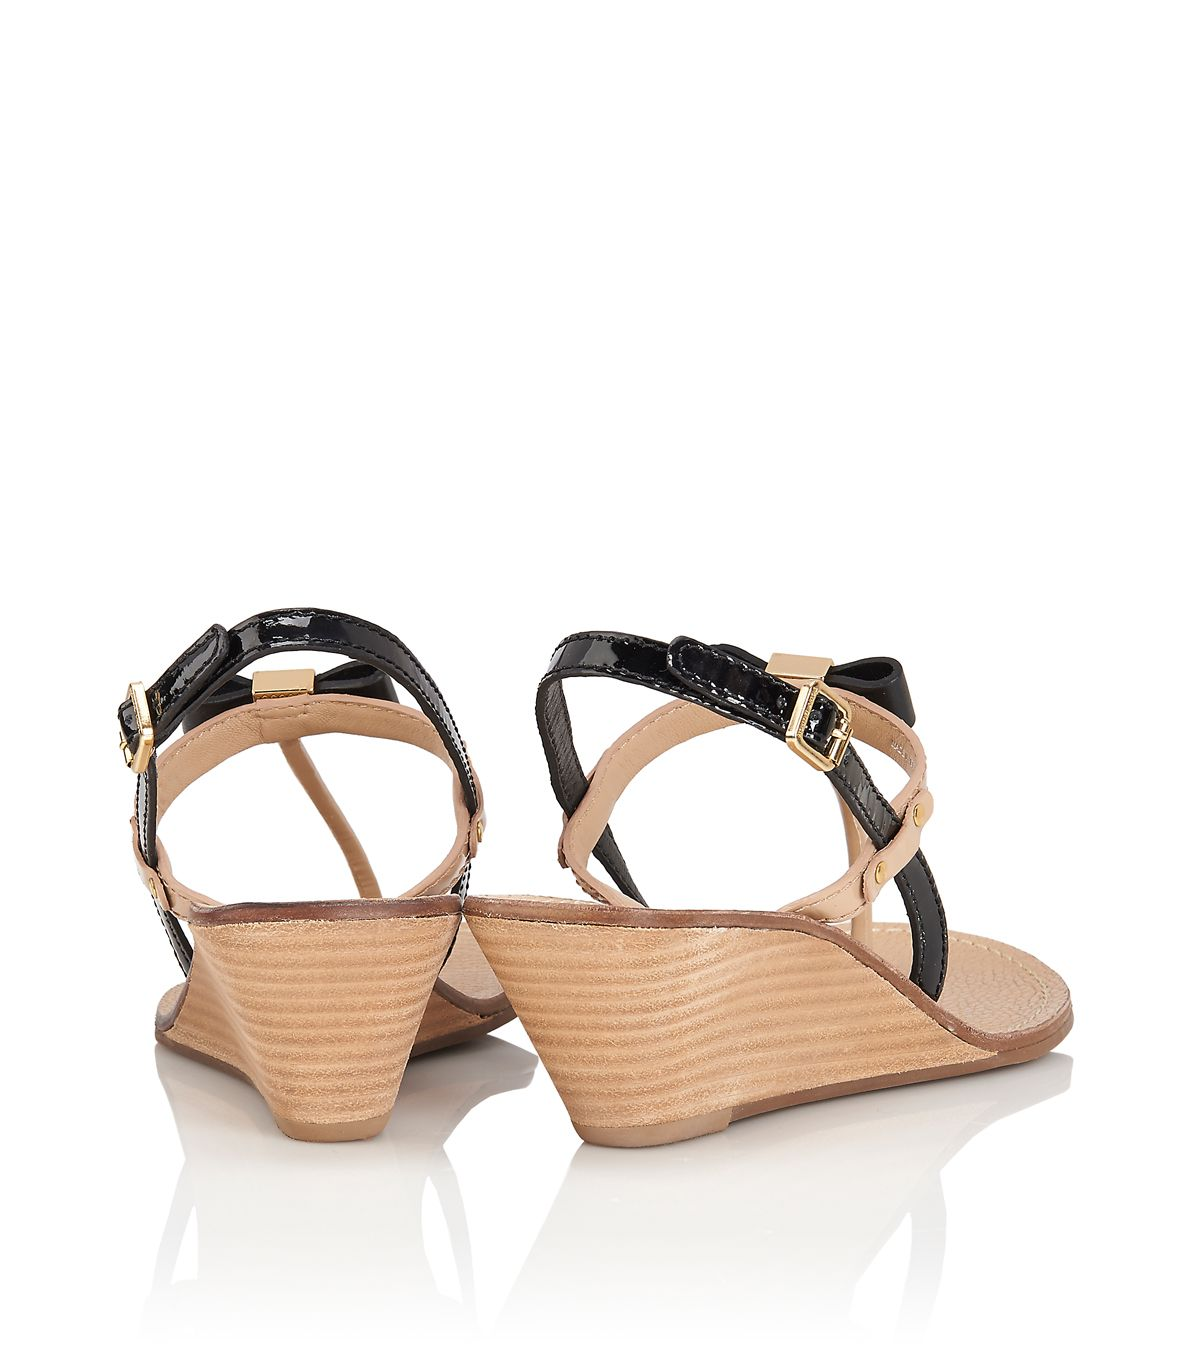 044b6a5de303 Lyst - Tory Burch Kailey Wedge Thong Sandal in Yellow